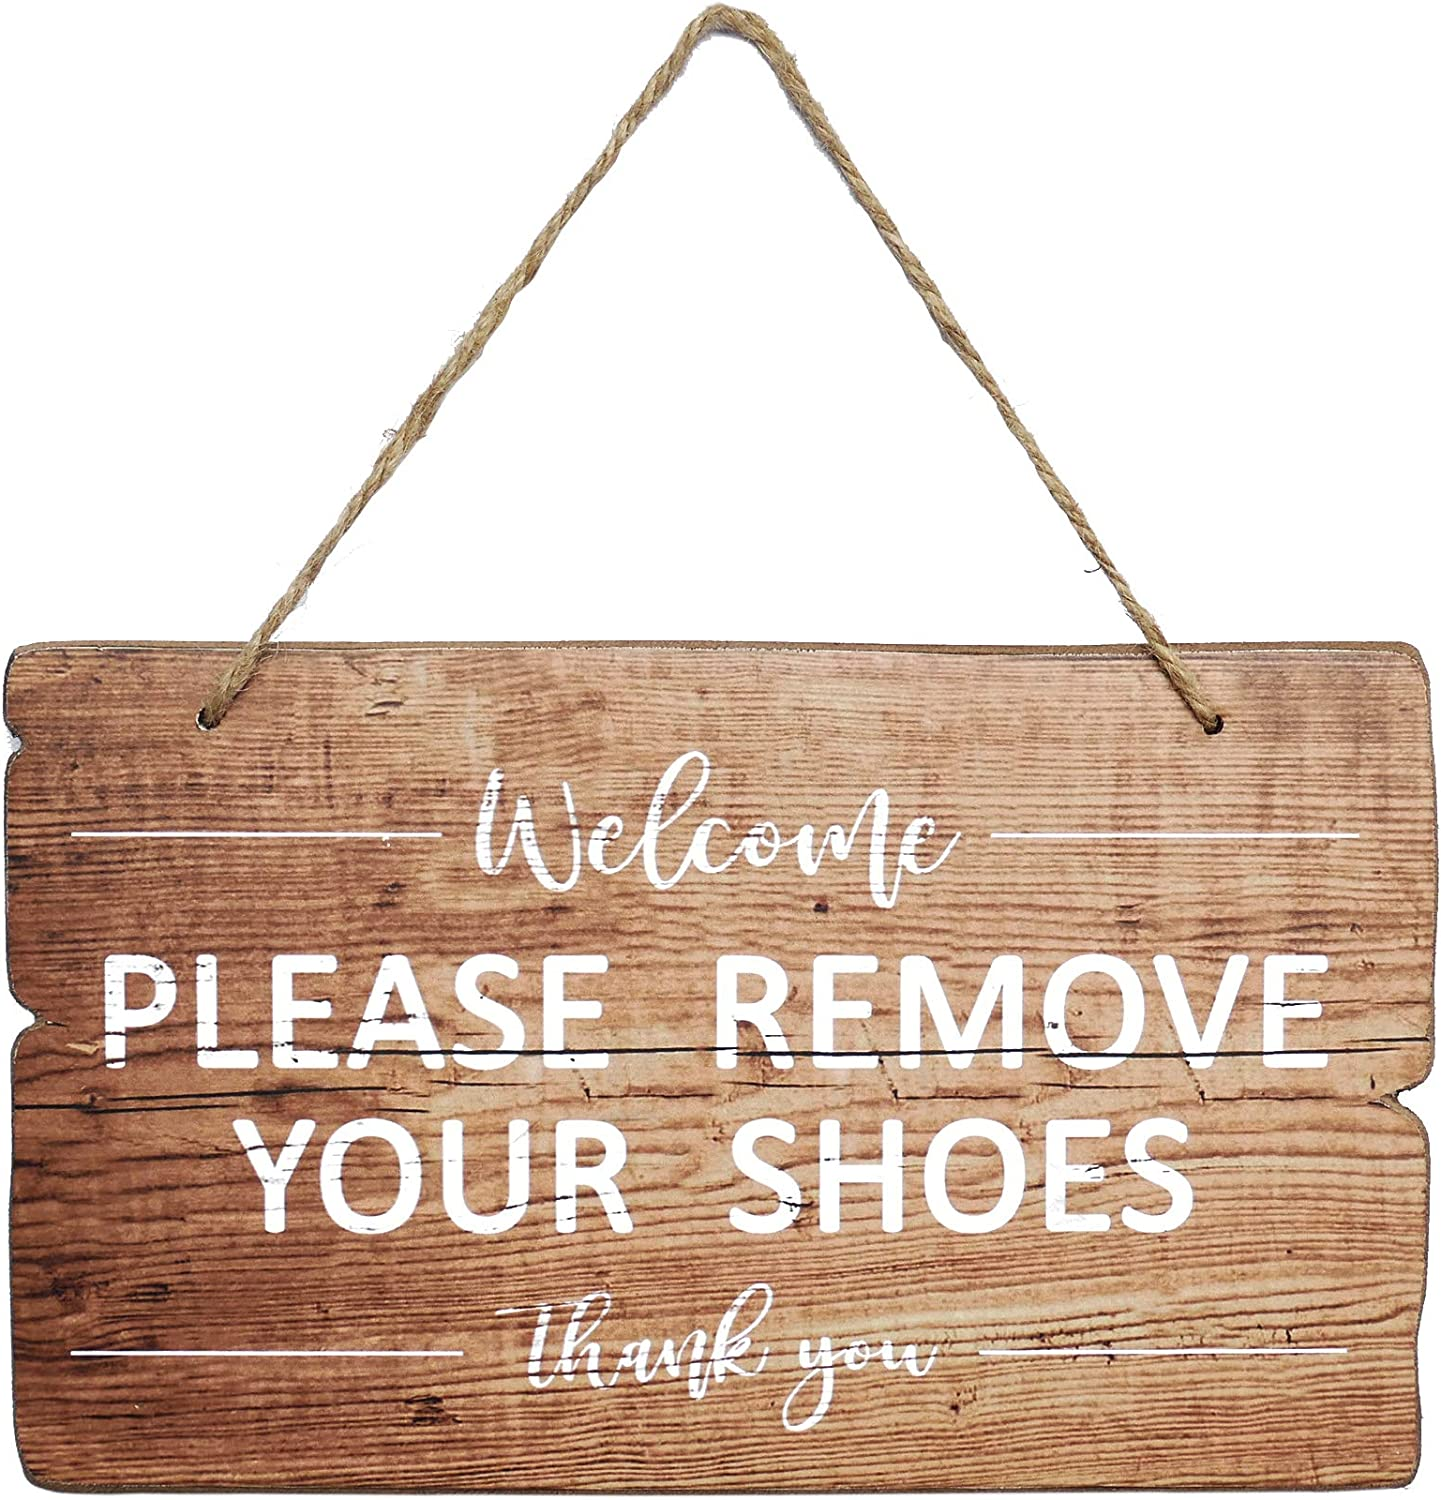 NIKKY HOME Wooden Wall Decorative Sign - Welcome Please Remove Your Shoes Thank You - 11 x 6 Inches